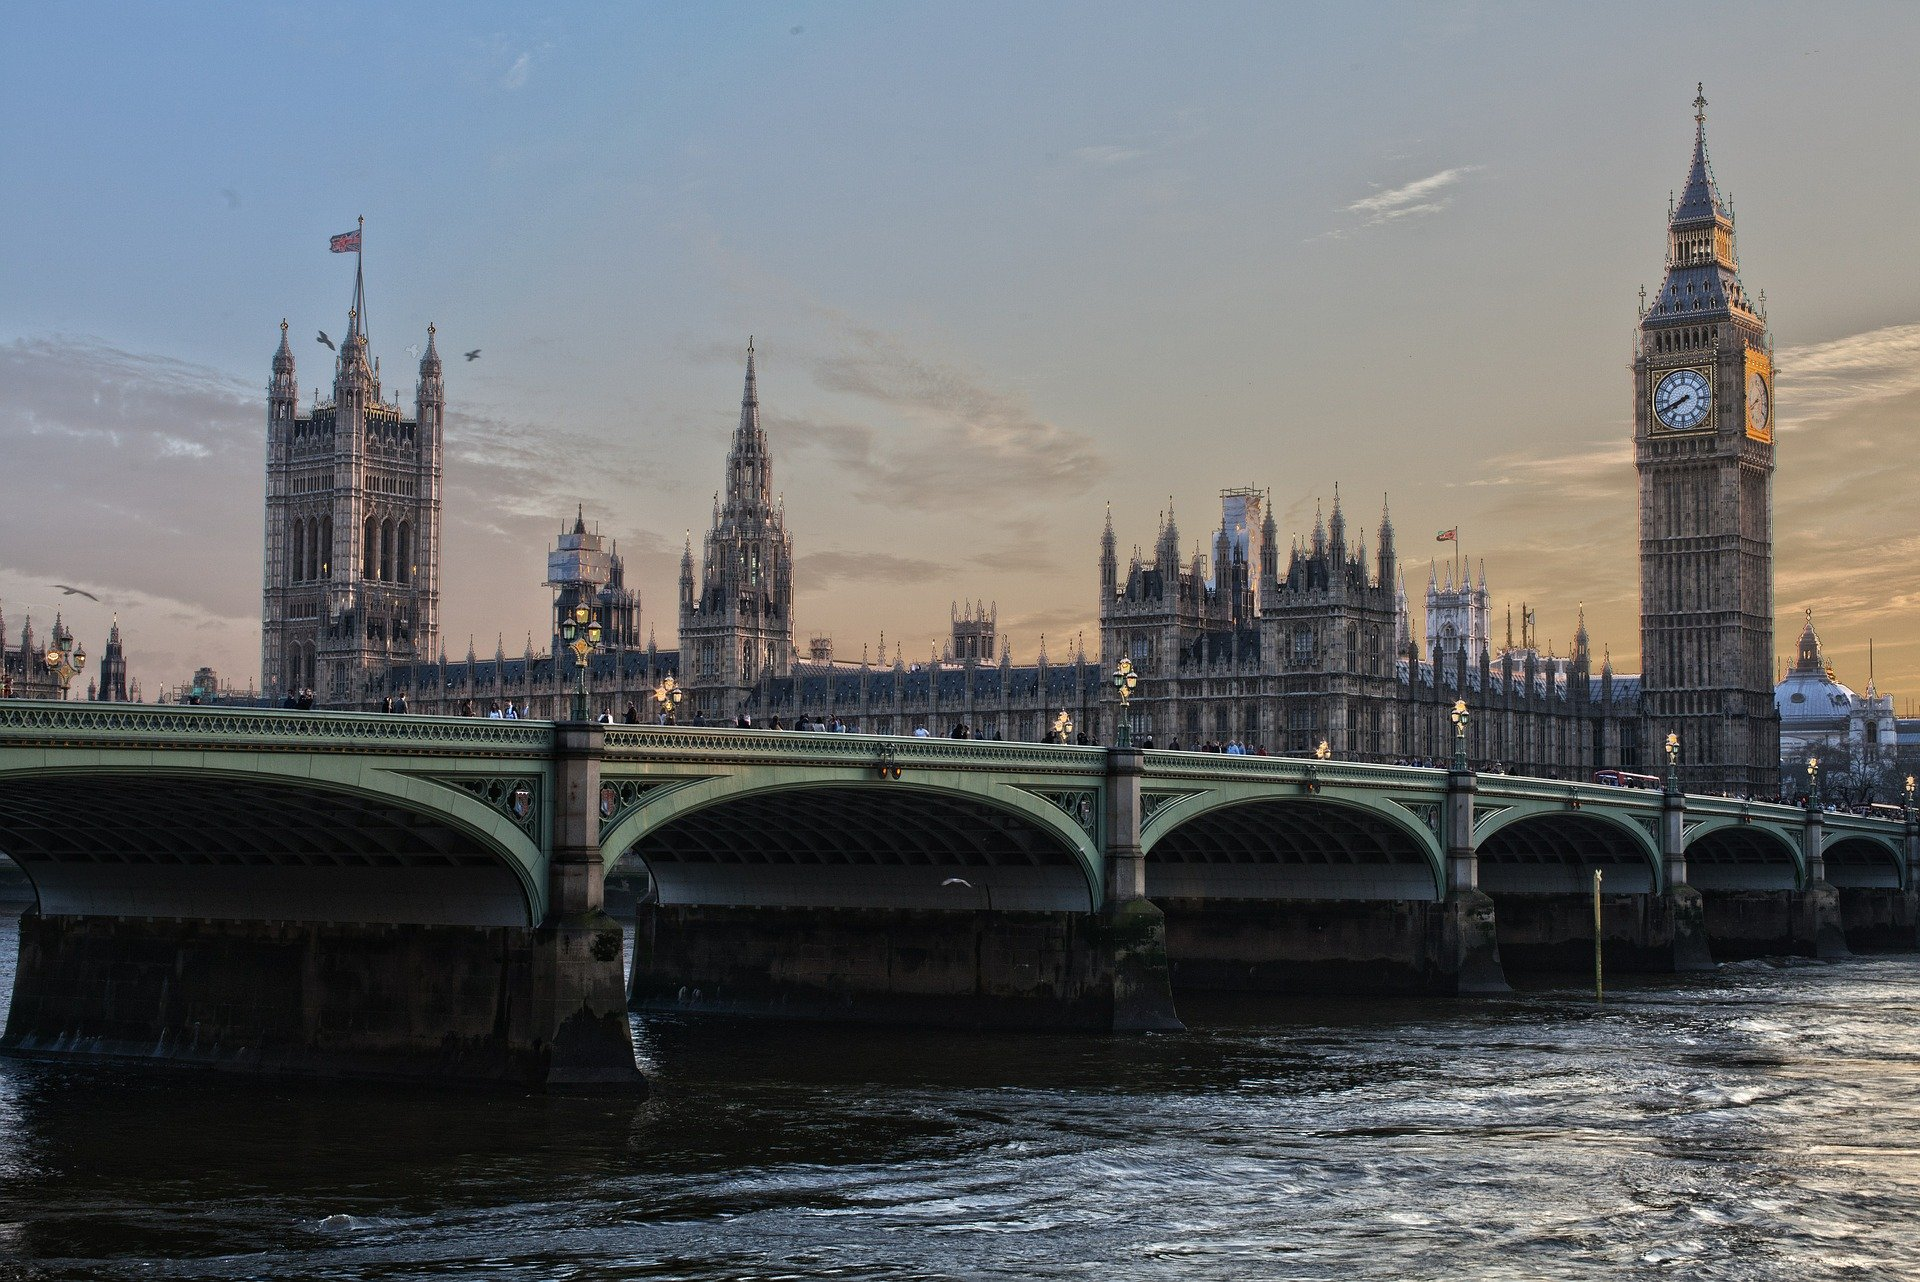 Image of Westminster Bridge and the Palace of Westminster